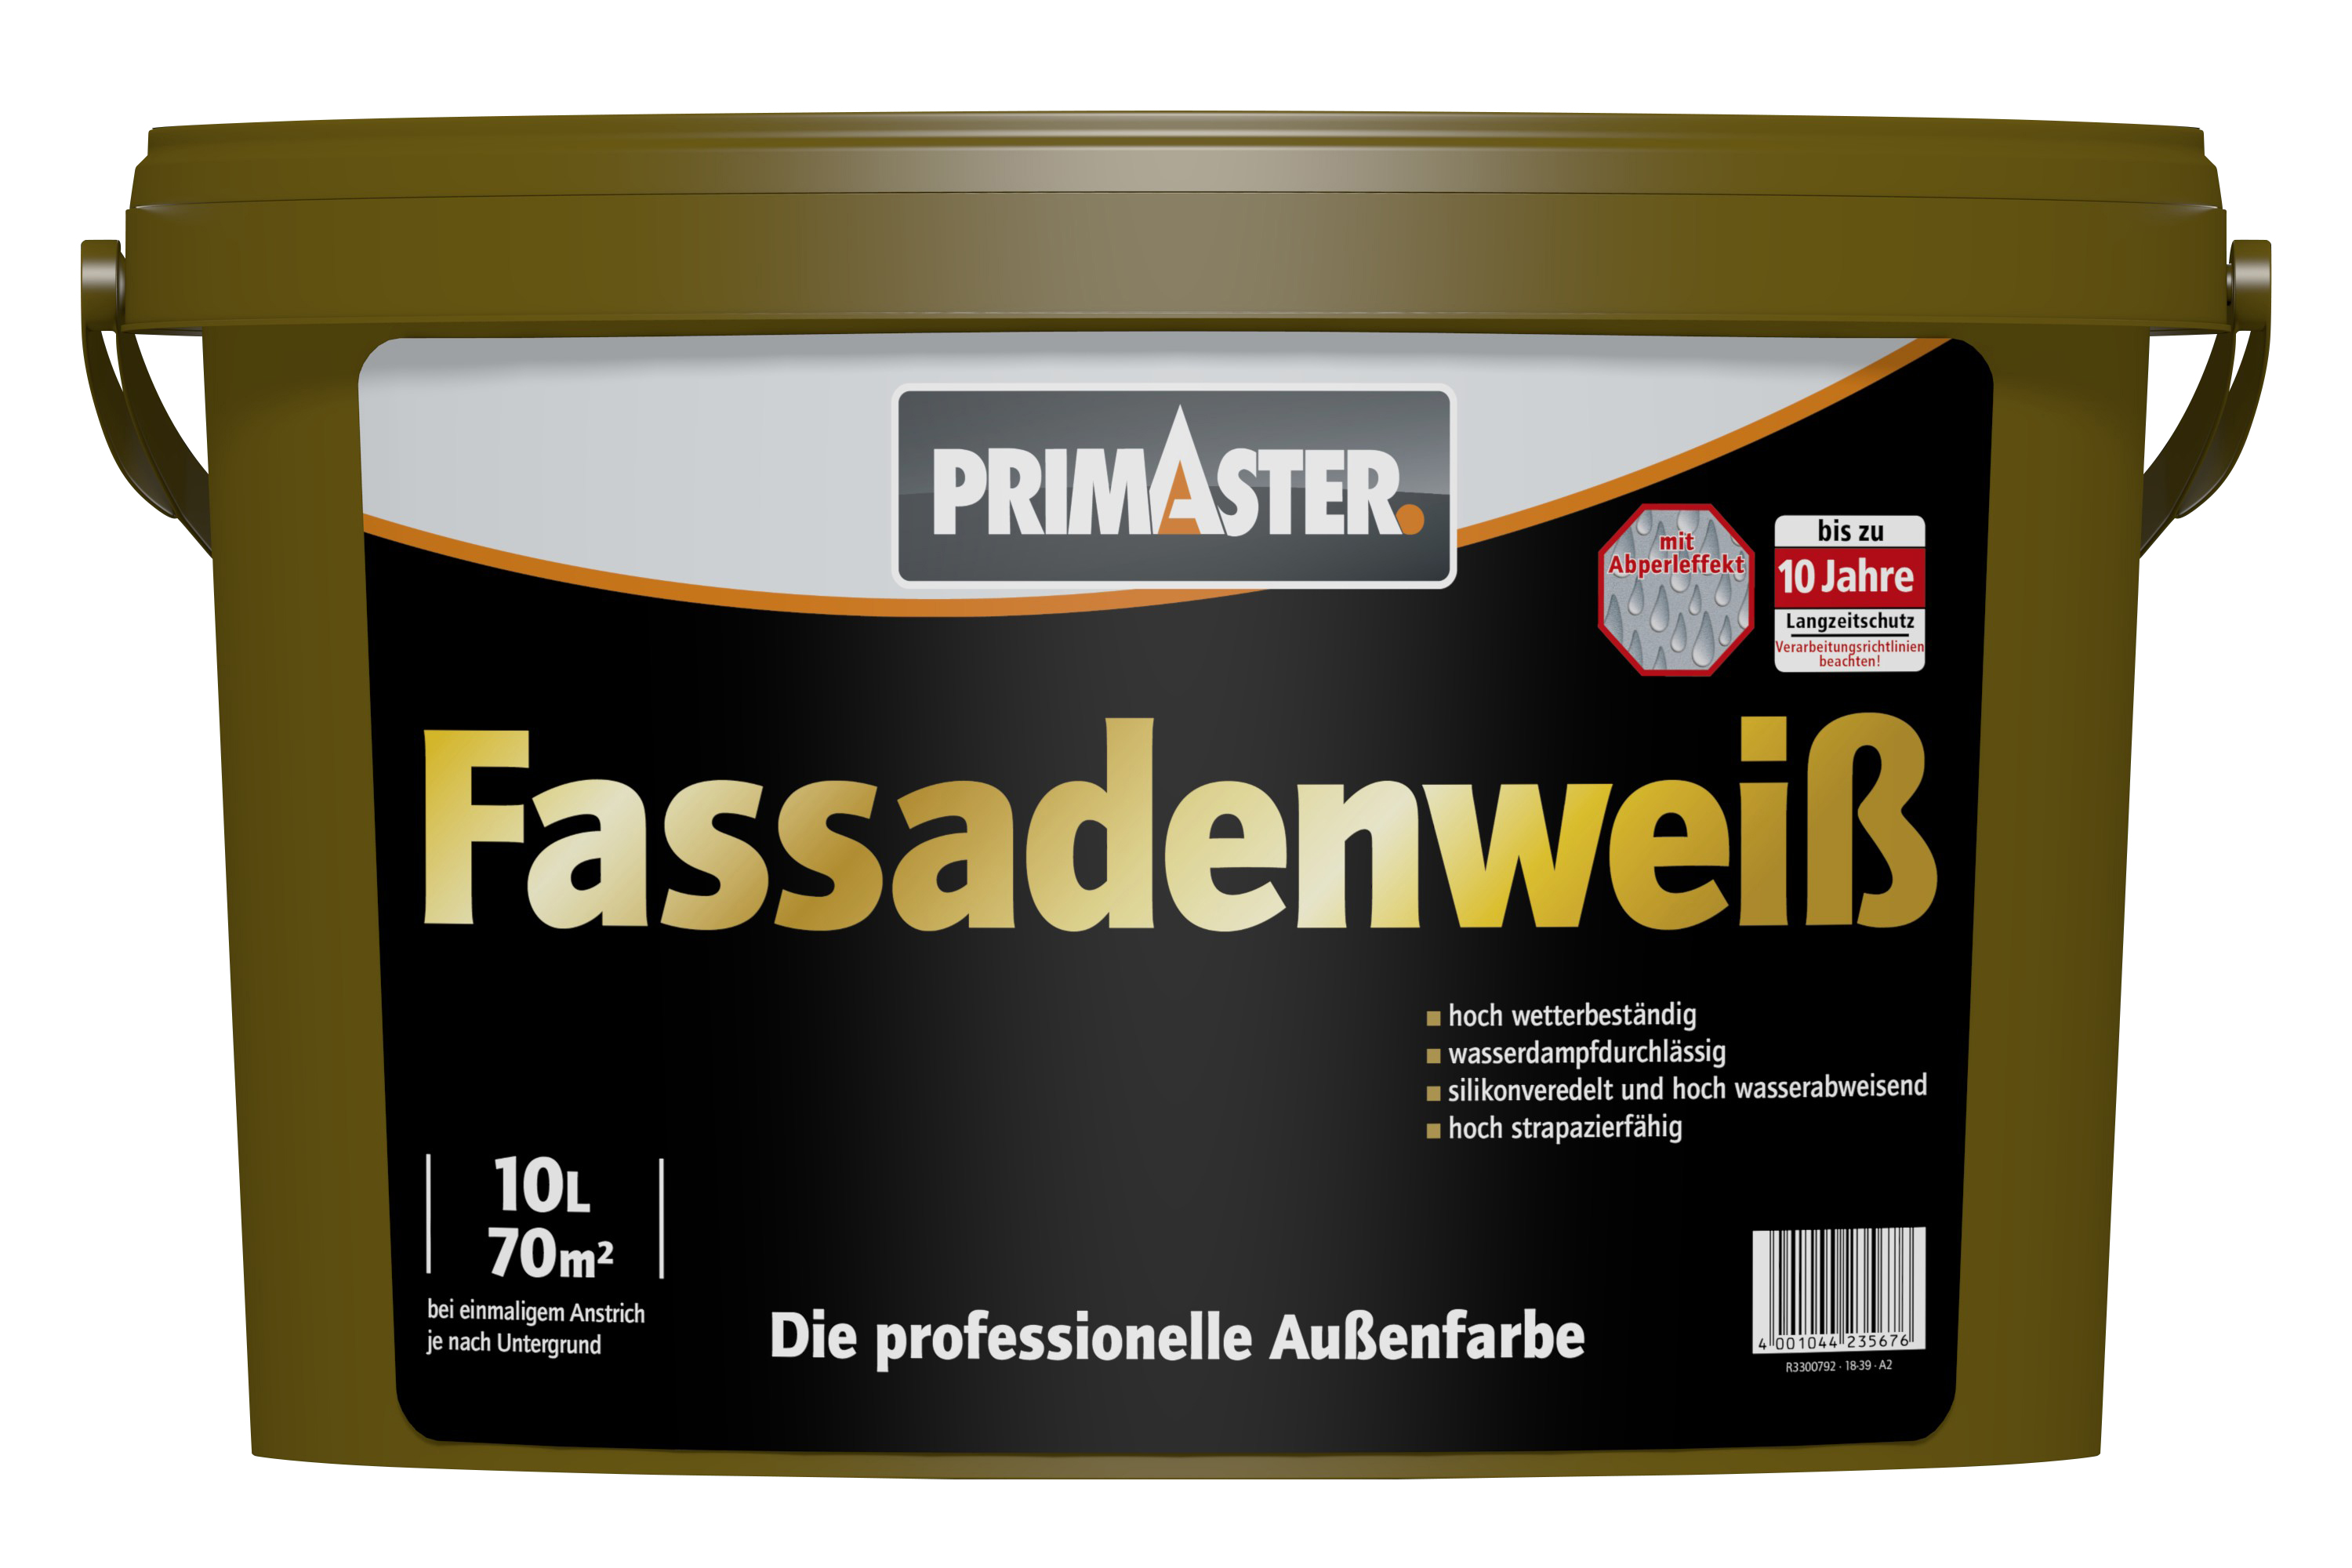 primaster fassadenweiss fassadenfarbe globus baumarkt online shop. Black Bedroom Furniture Sets. Home Design Ideas